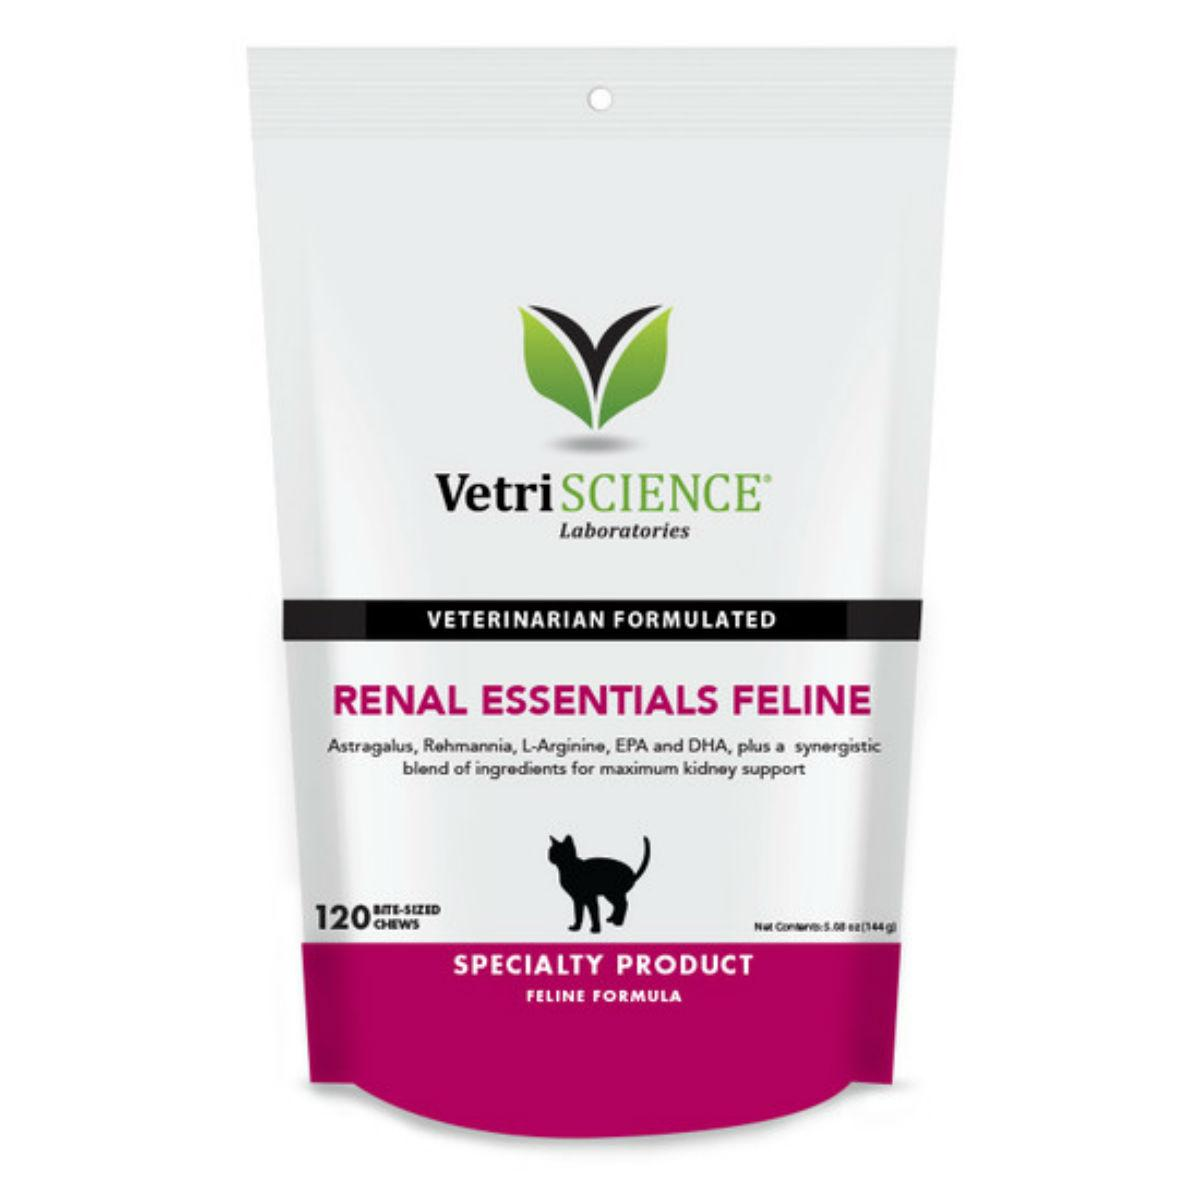 VetriScience Renal Essentials Feline Bite-Sized Cat Chews